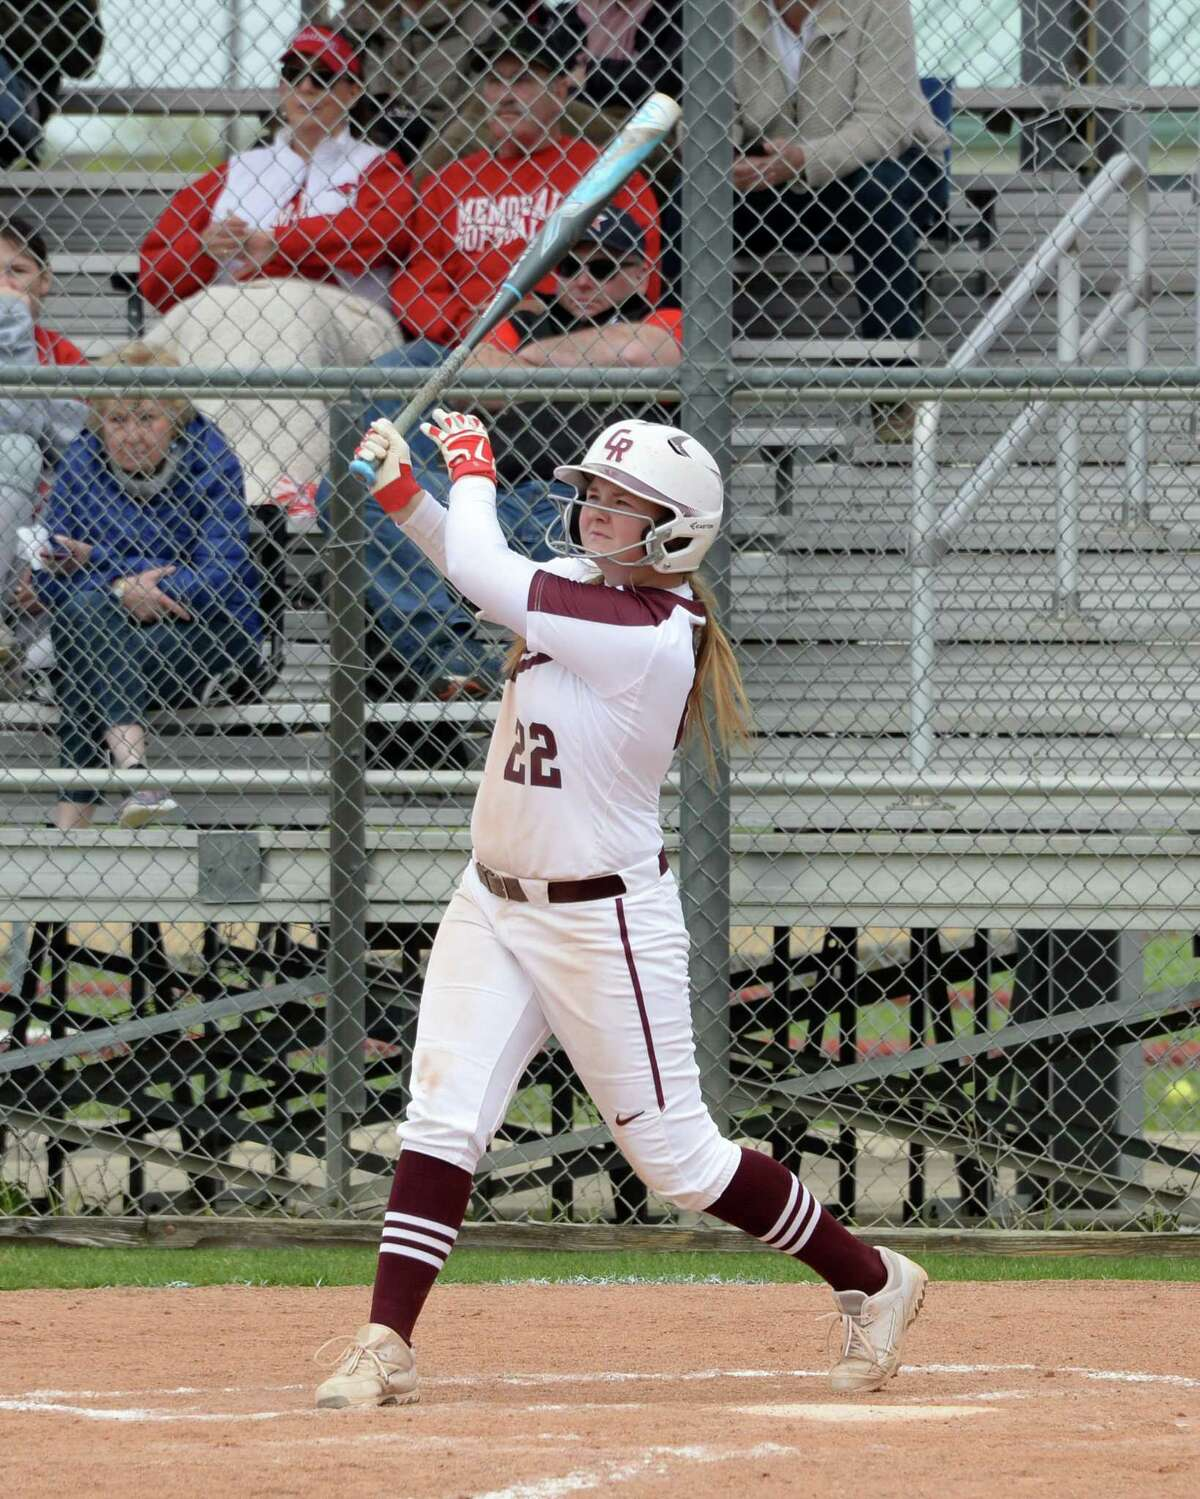 Shelby Hodge (22) of Cinco Ranch doubles during the first inning in high school softball game between the Cinco Ranch Cougars and the Memorial Mustangs on Saturday March 16, 2019 at Cinco Ranch High School, Katy, TX.